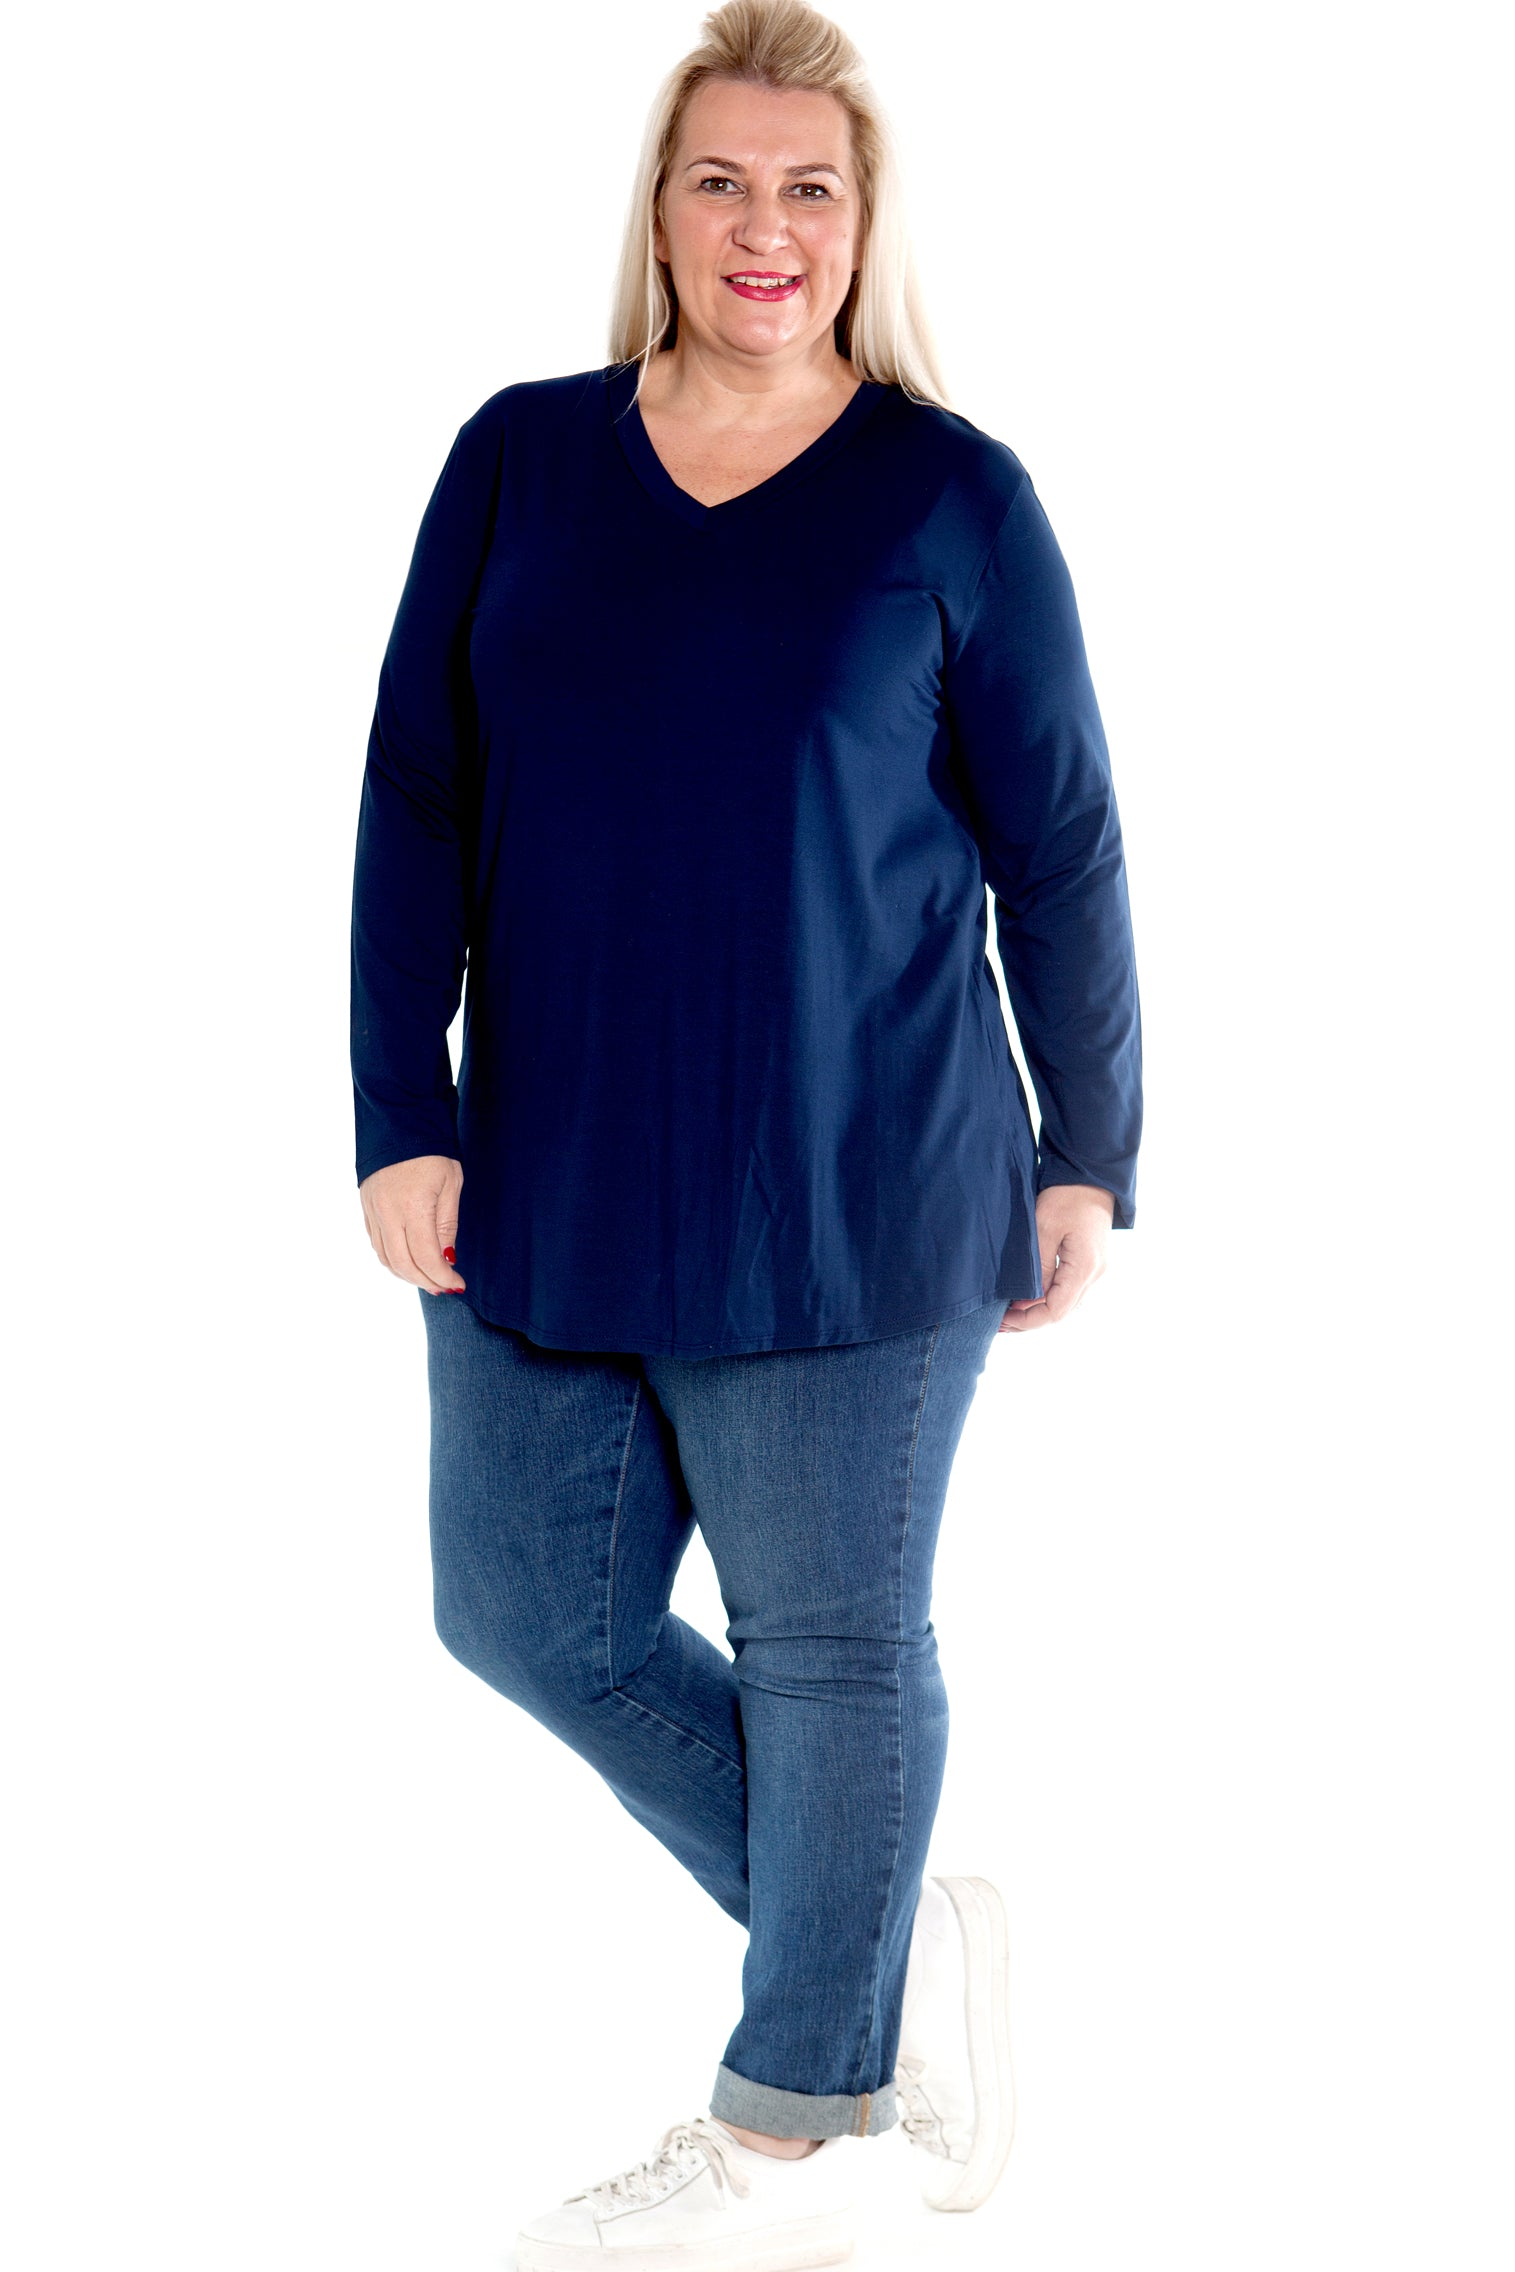 Top Ruth -  Navy Blue Stretch